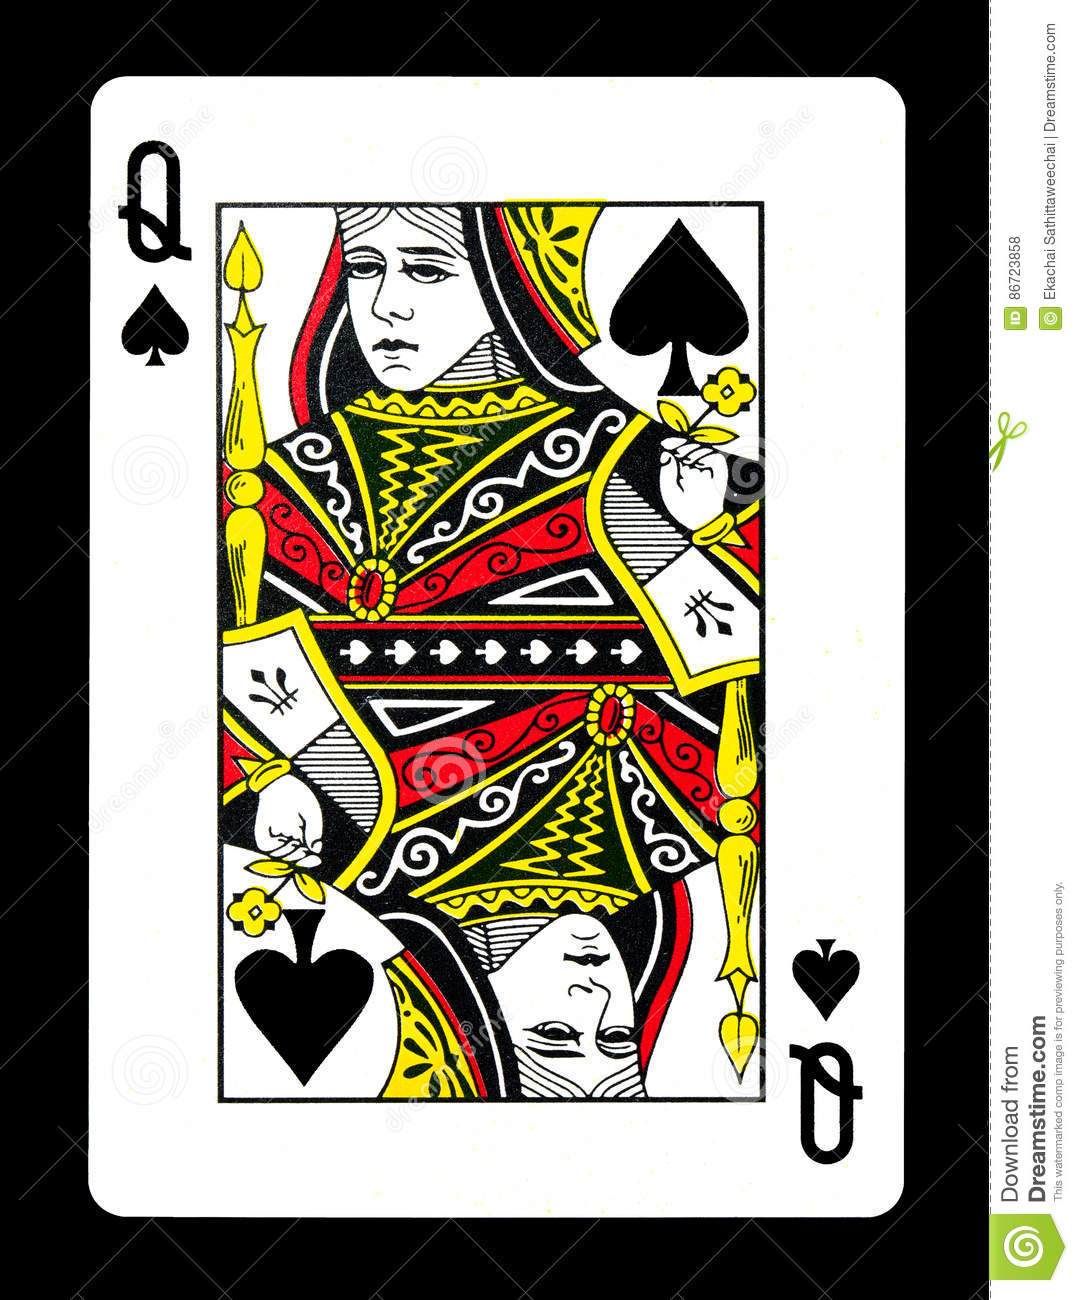 Queen of spades photos